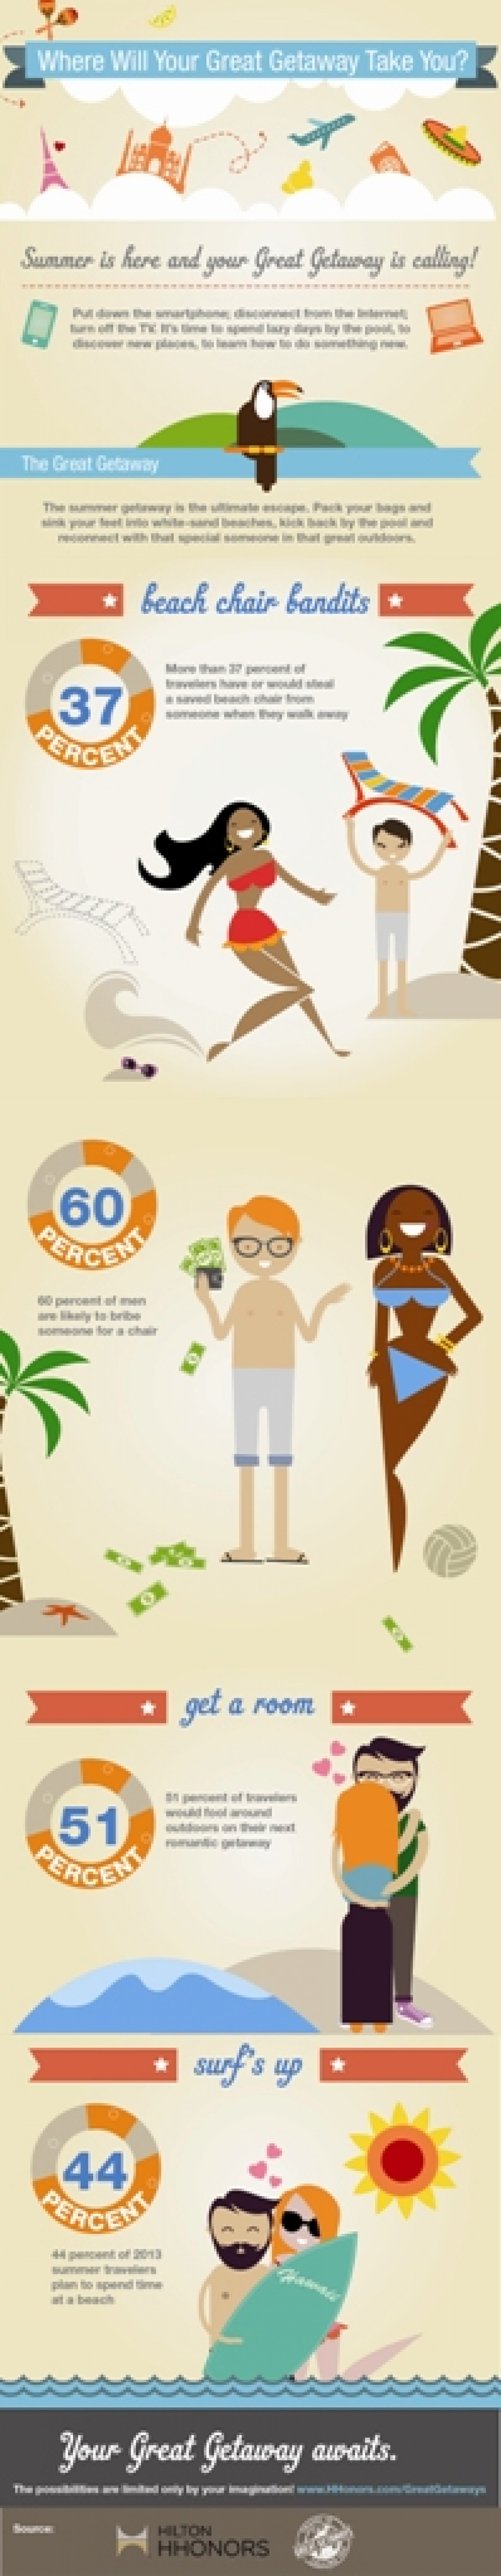 Where Will Your Great Getaway Take You Infographic